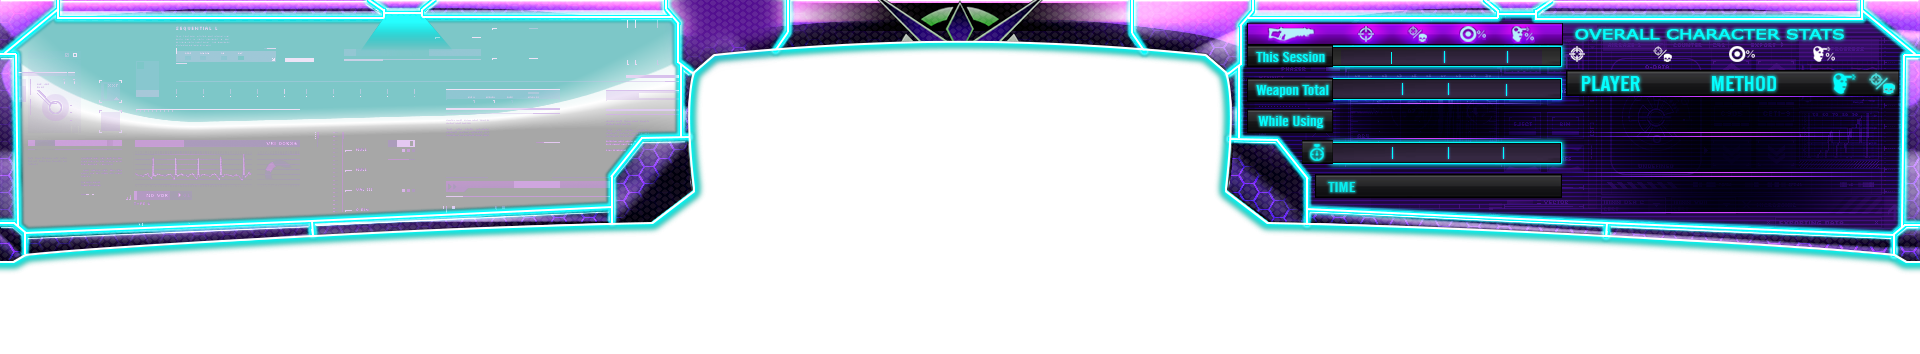 Banner overlay png. Eight s thread vanu